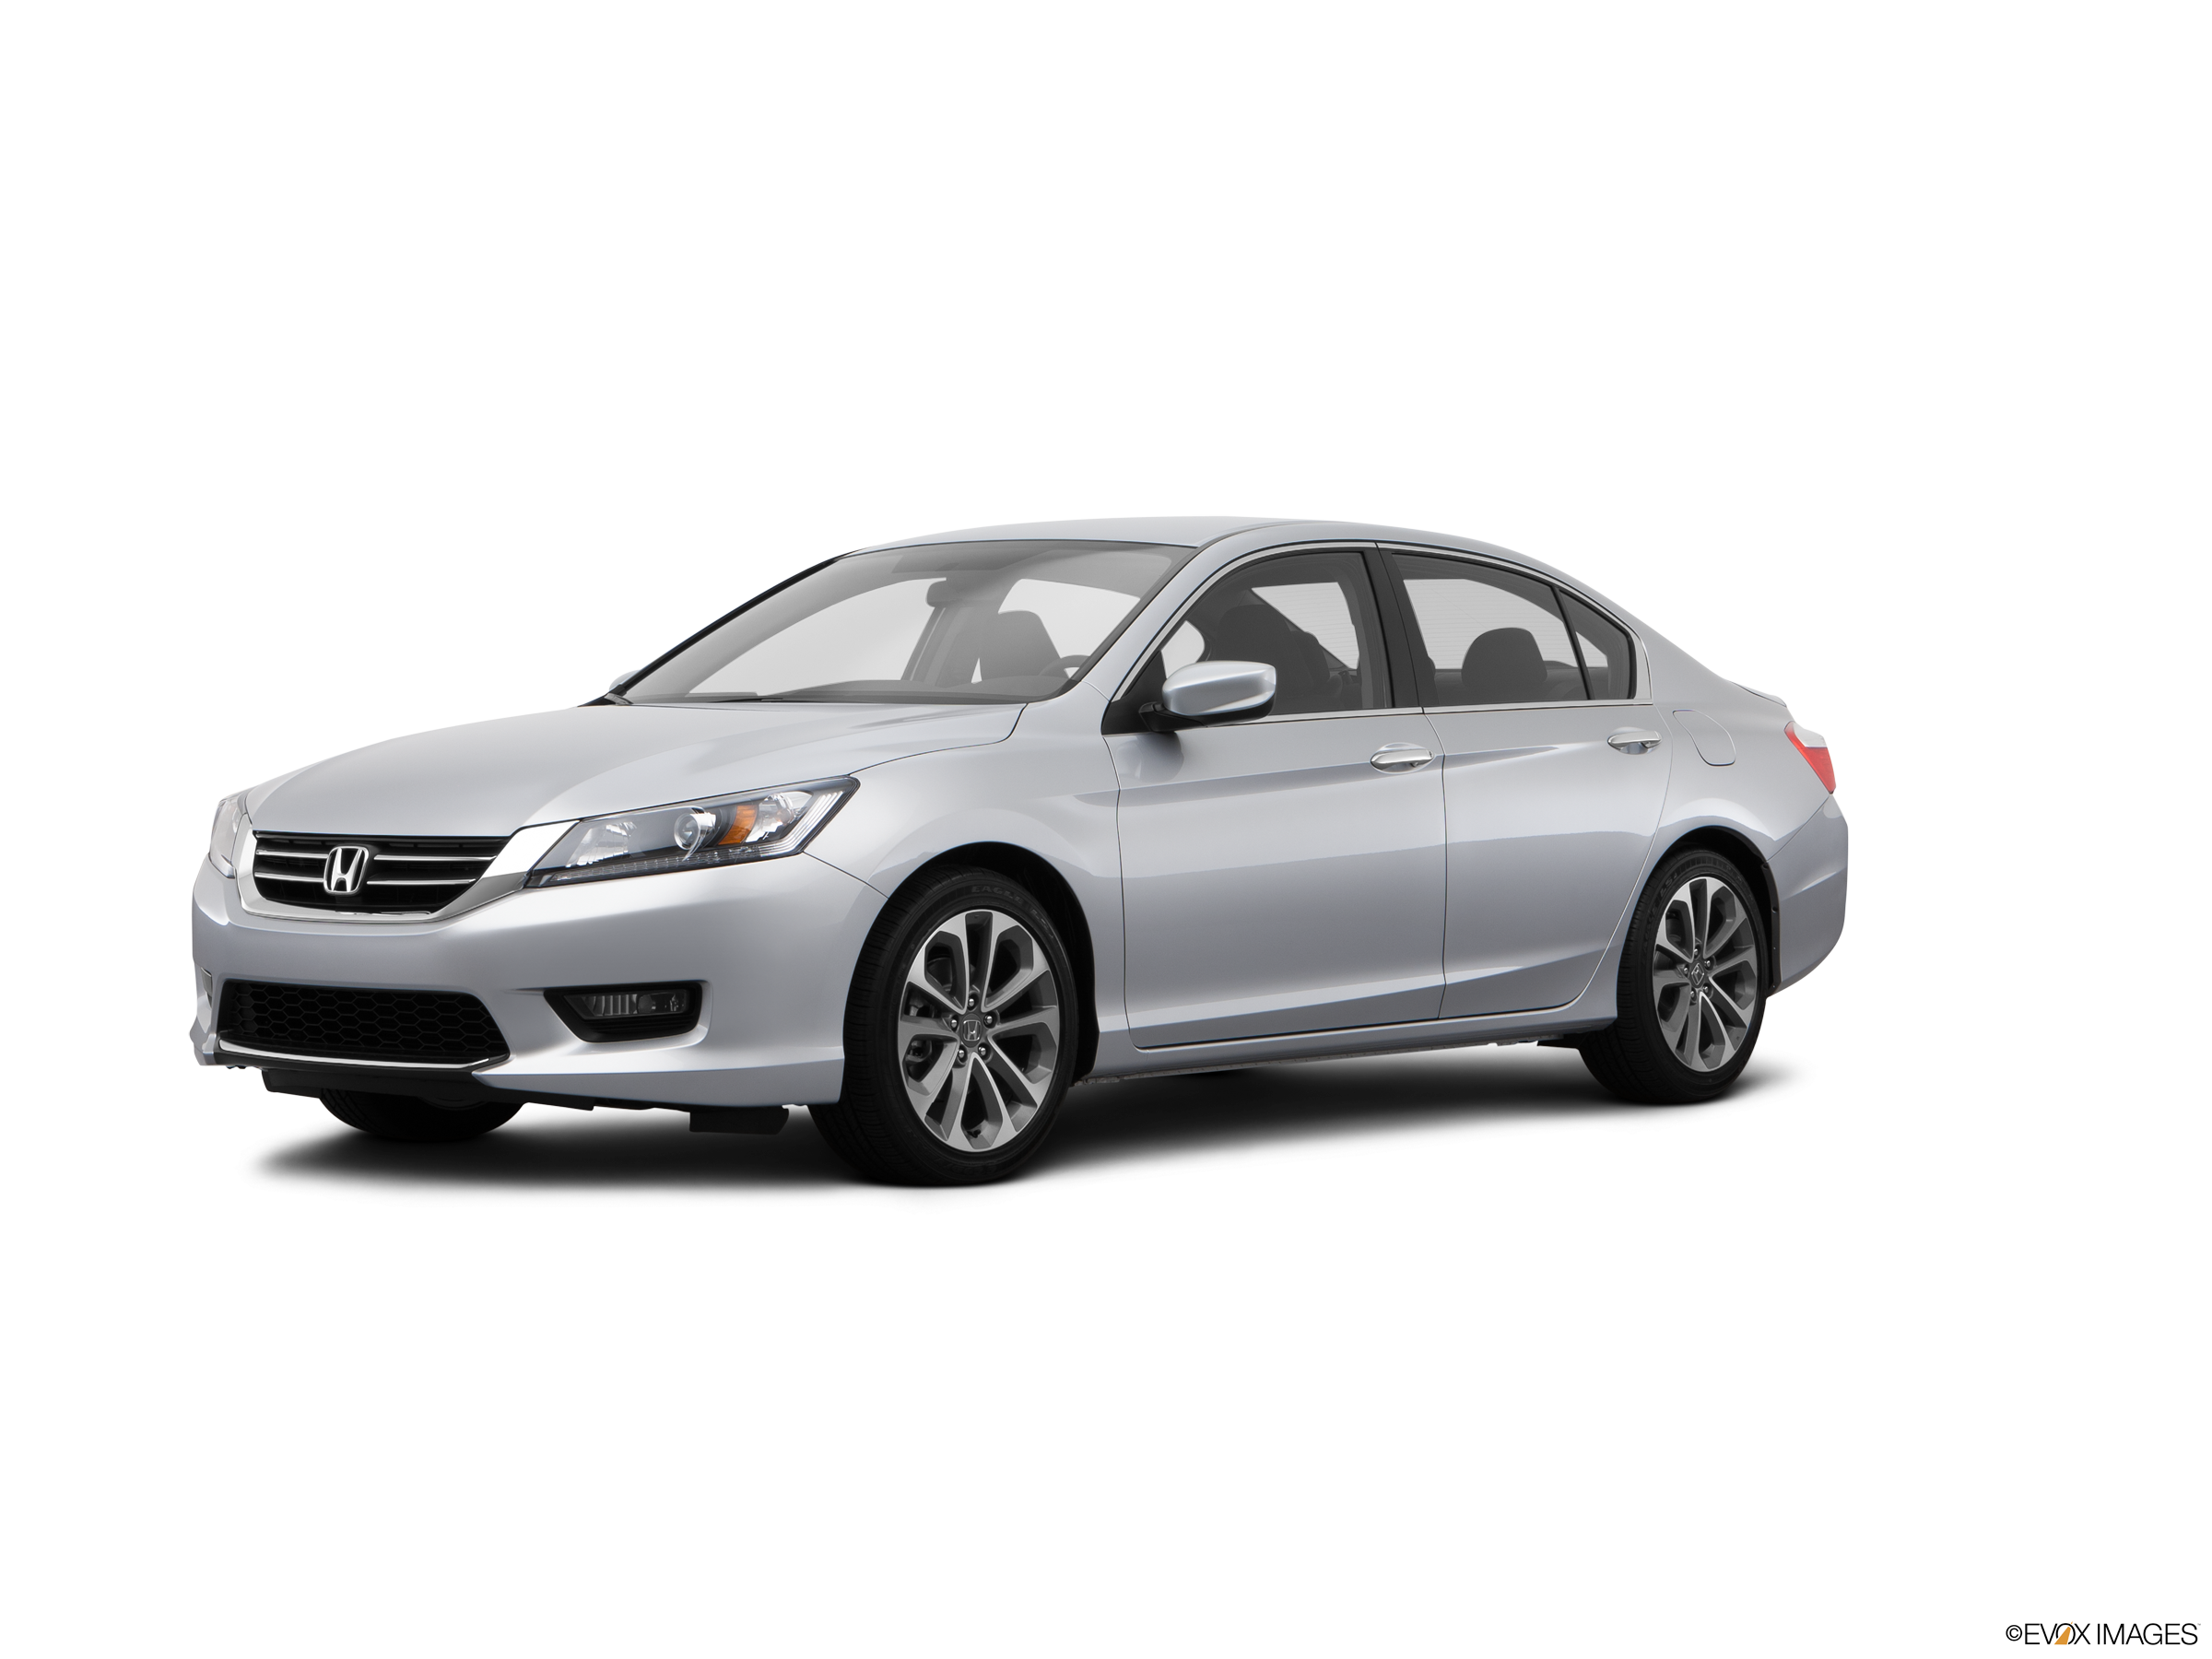 Image Result For Honda Accord Lease Deals Long Island